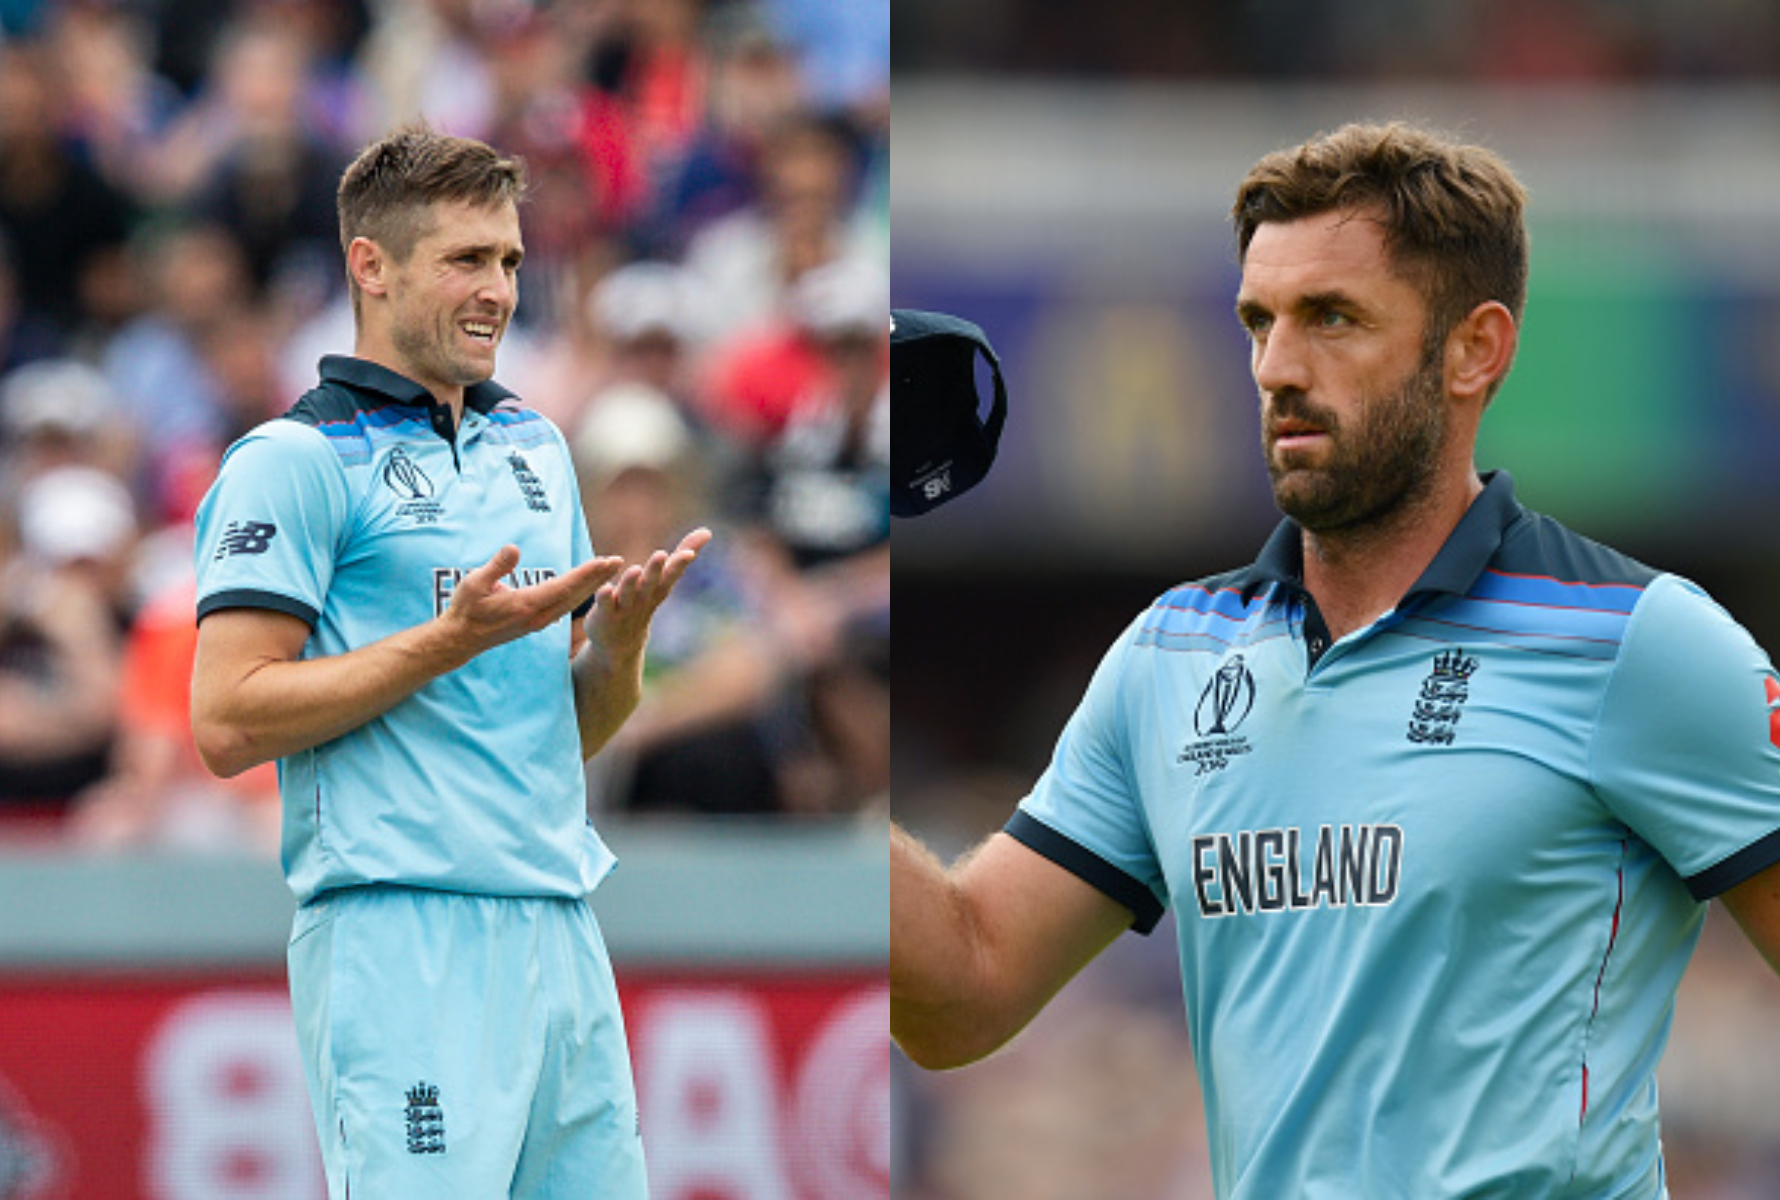 Both Woakes and Plunkett picked three wickets each | Getty